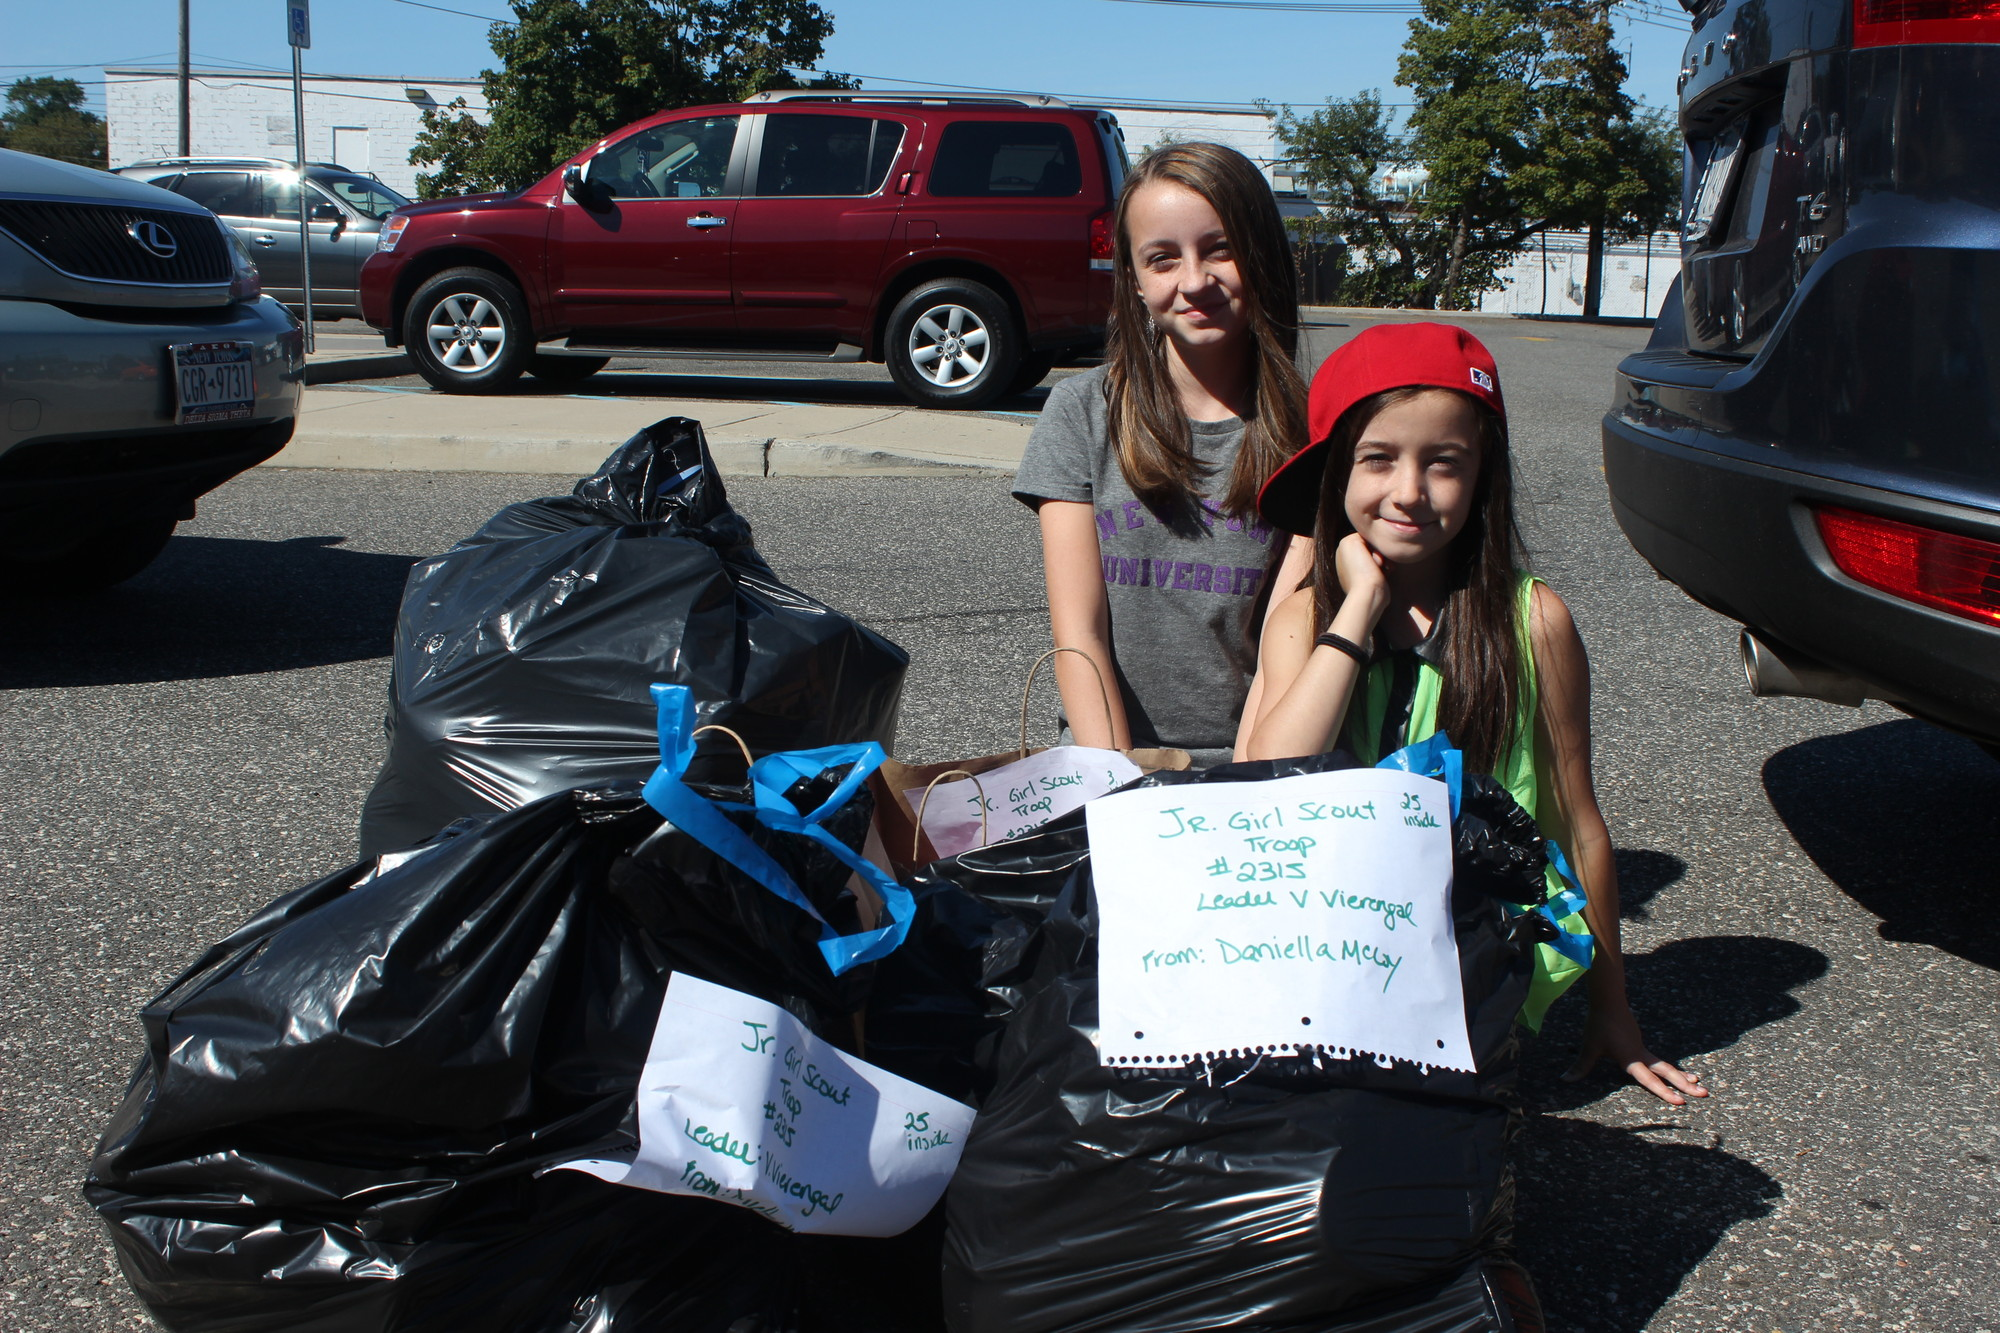 Theresa Press/Herald